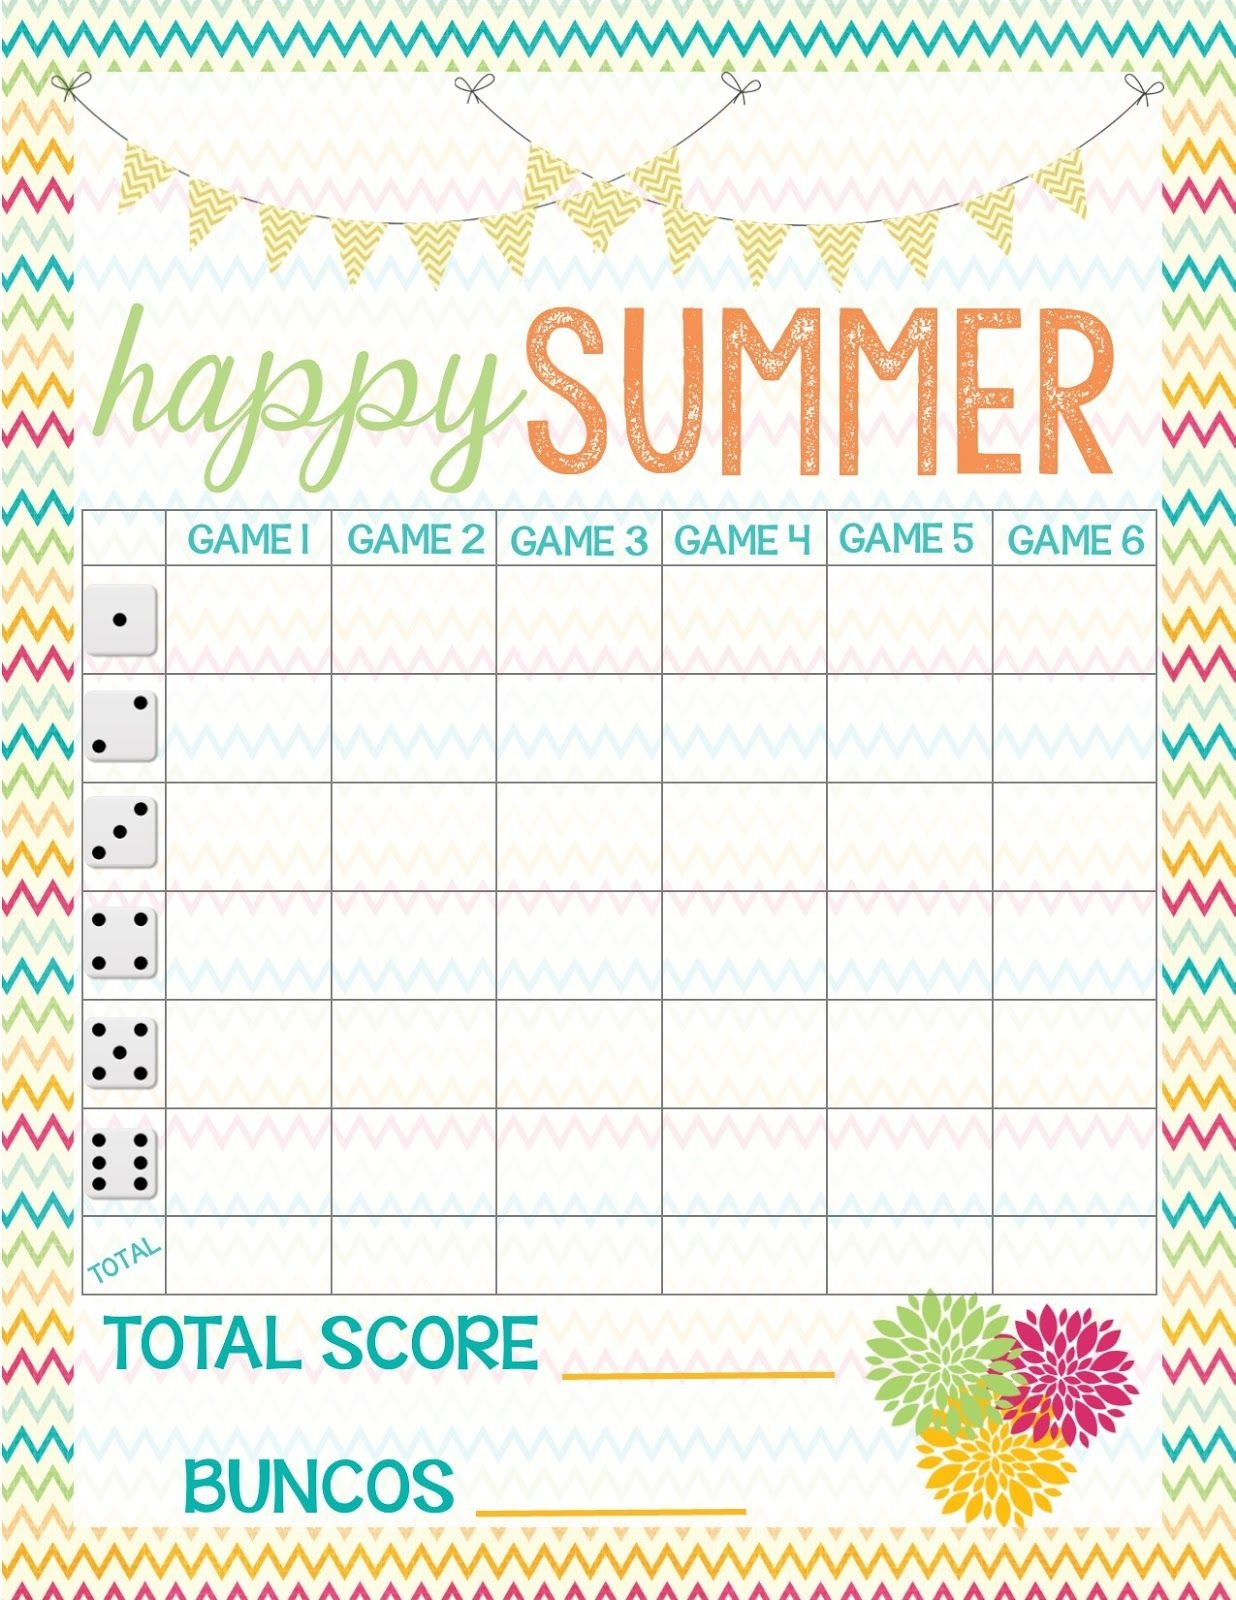 Recipes From Stephanie: Free Bunco Score Sheet | Bunco In 2019 - Free Printable Bunco Game Sheets